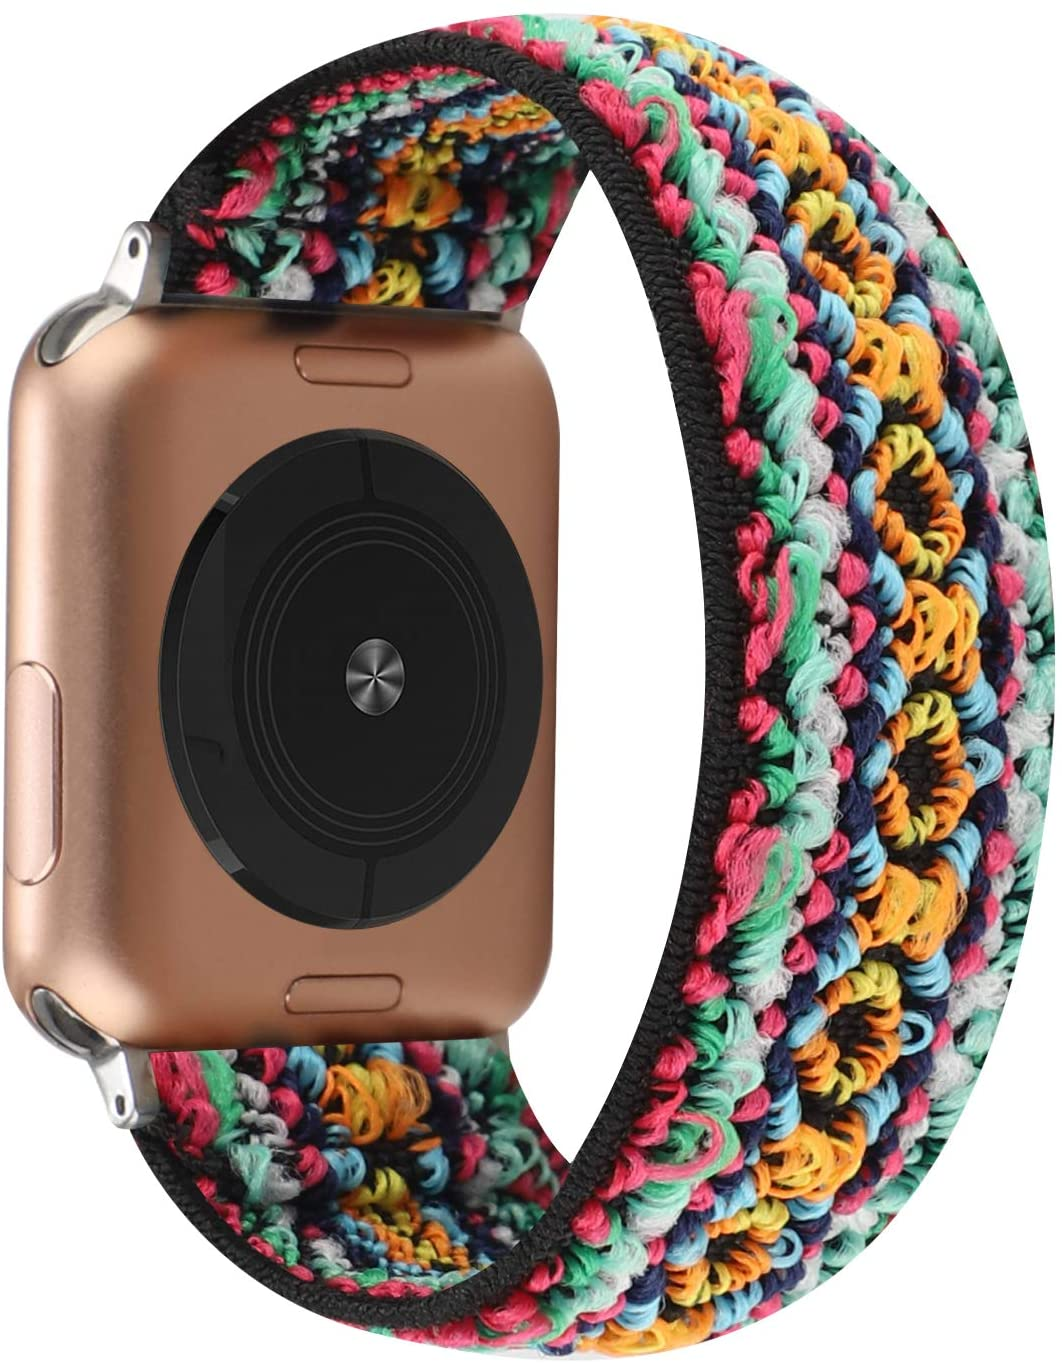 Stretchy Solo Loop Strap Compatible with Apple Watch Band 38mm 40mm 42mm 44mm, Stretch Elastics Nylon Wristband for iWatch Series 6/SE/5/4/3/2/1 (Colourful Mesh Embroidery, 38mm/40mm for M/L Wrist)